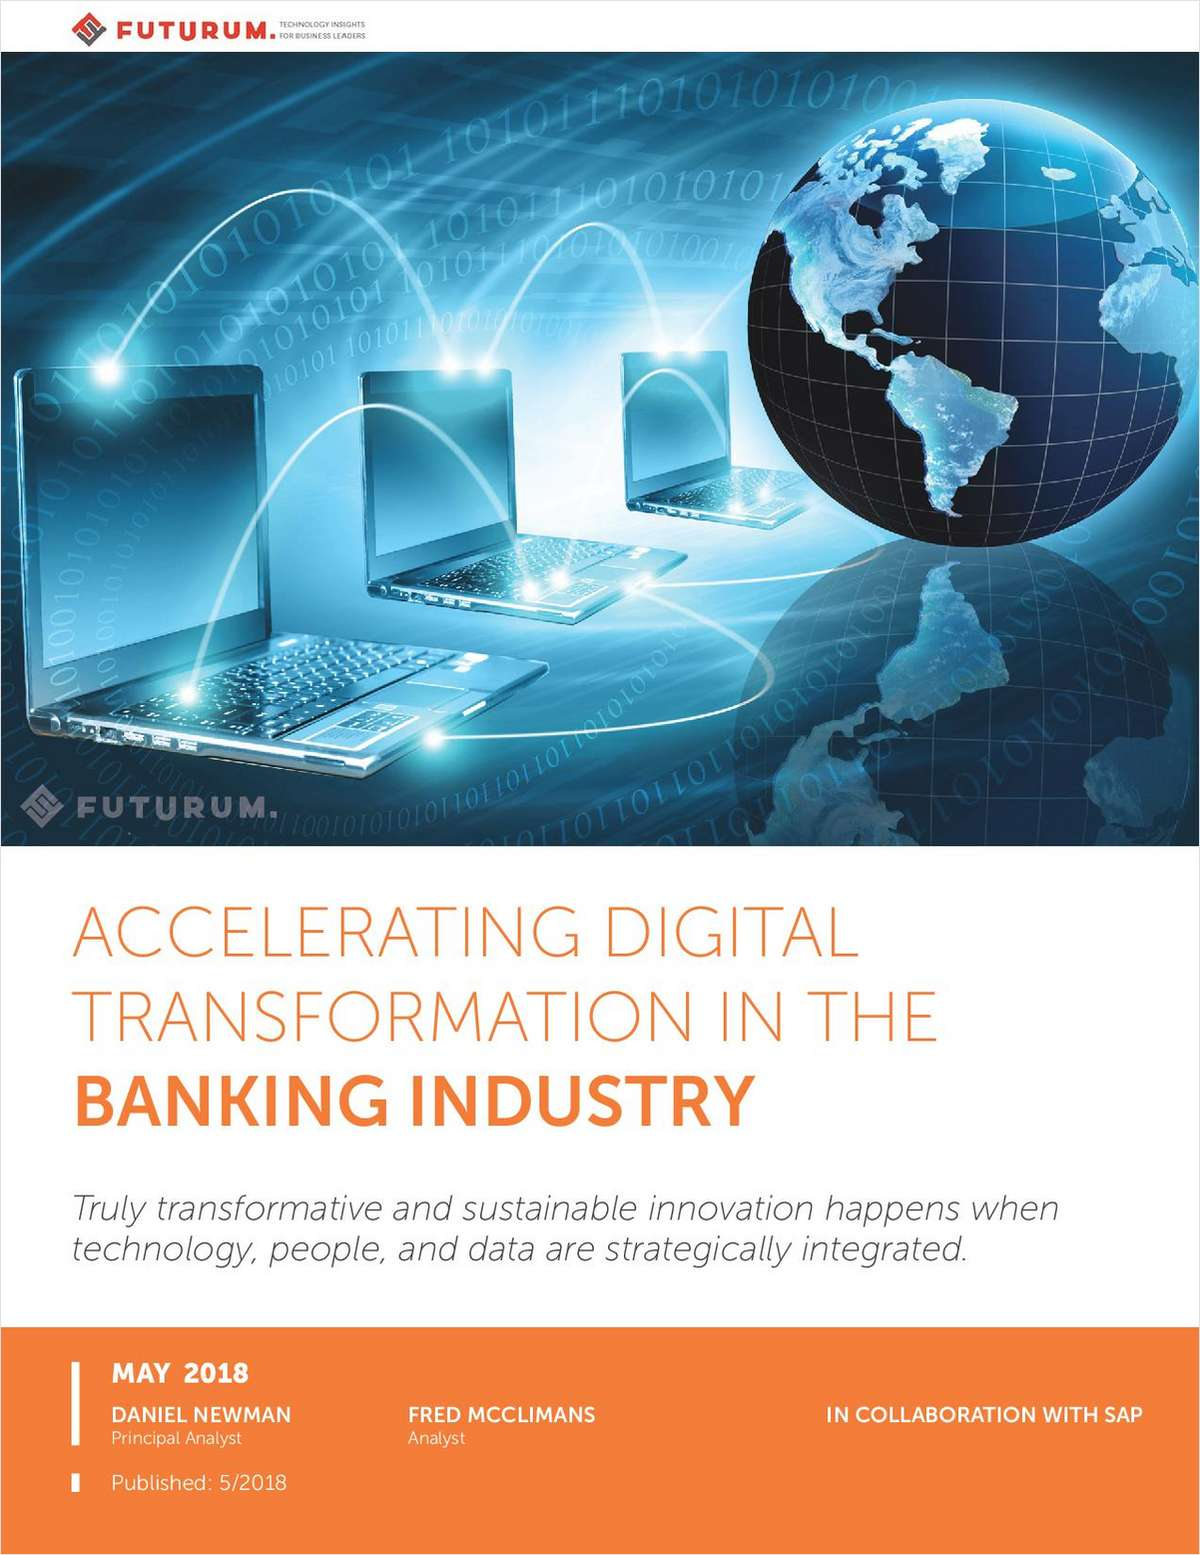 Accelerating Digital Transformation in the Banking Industry